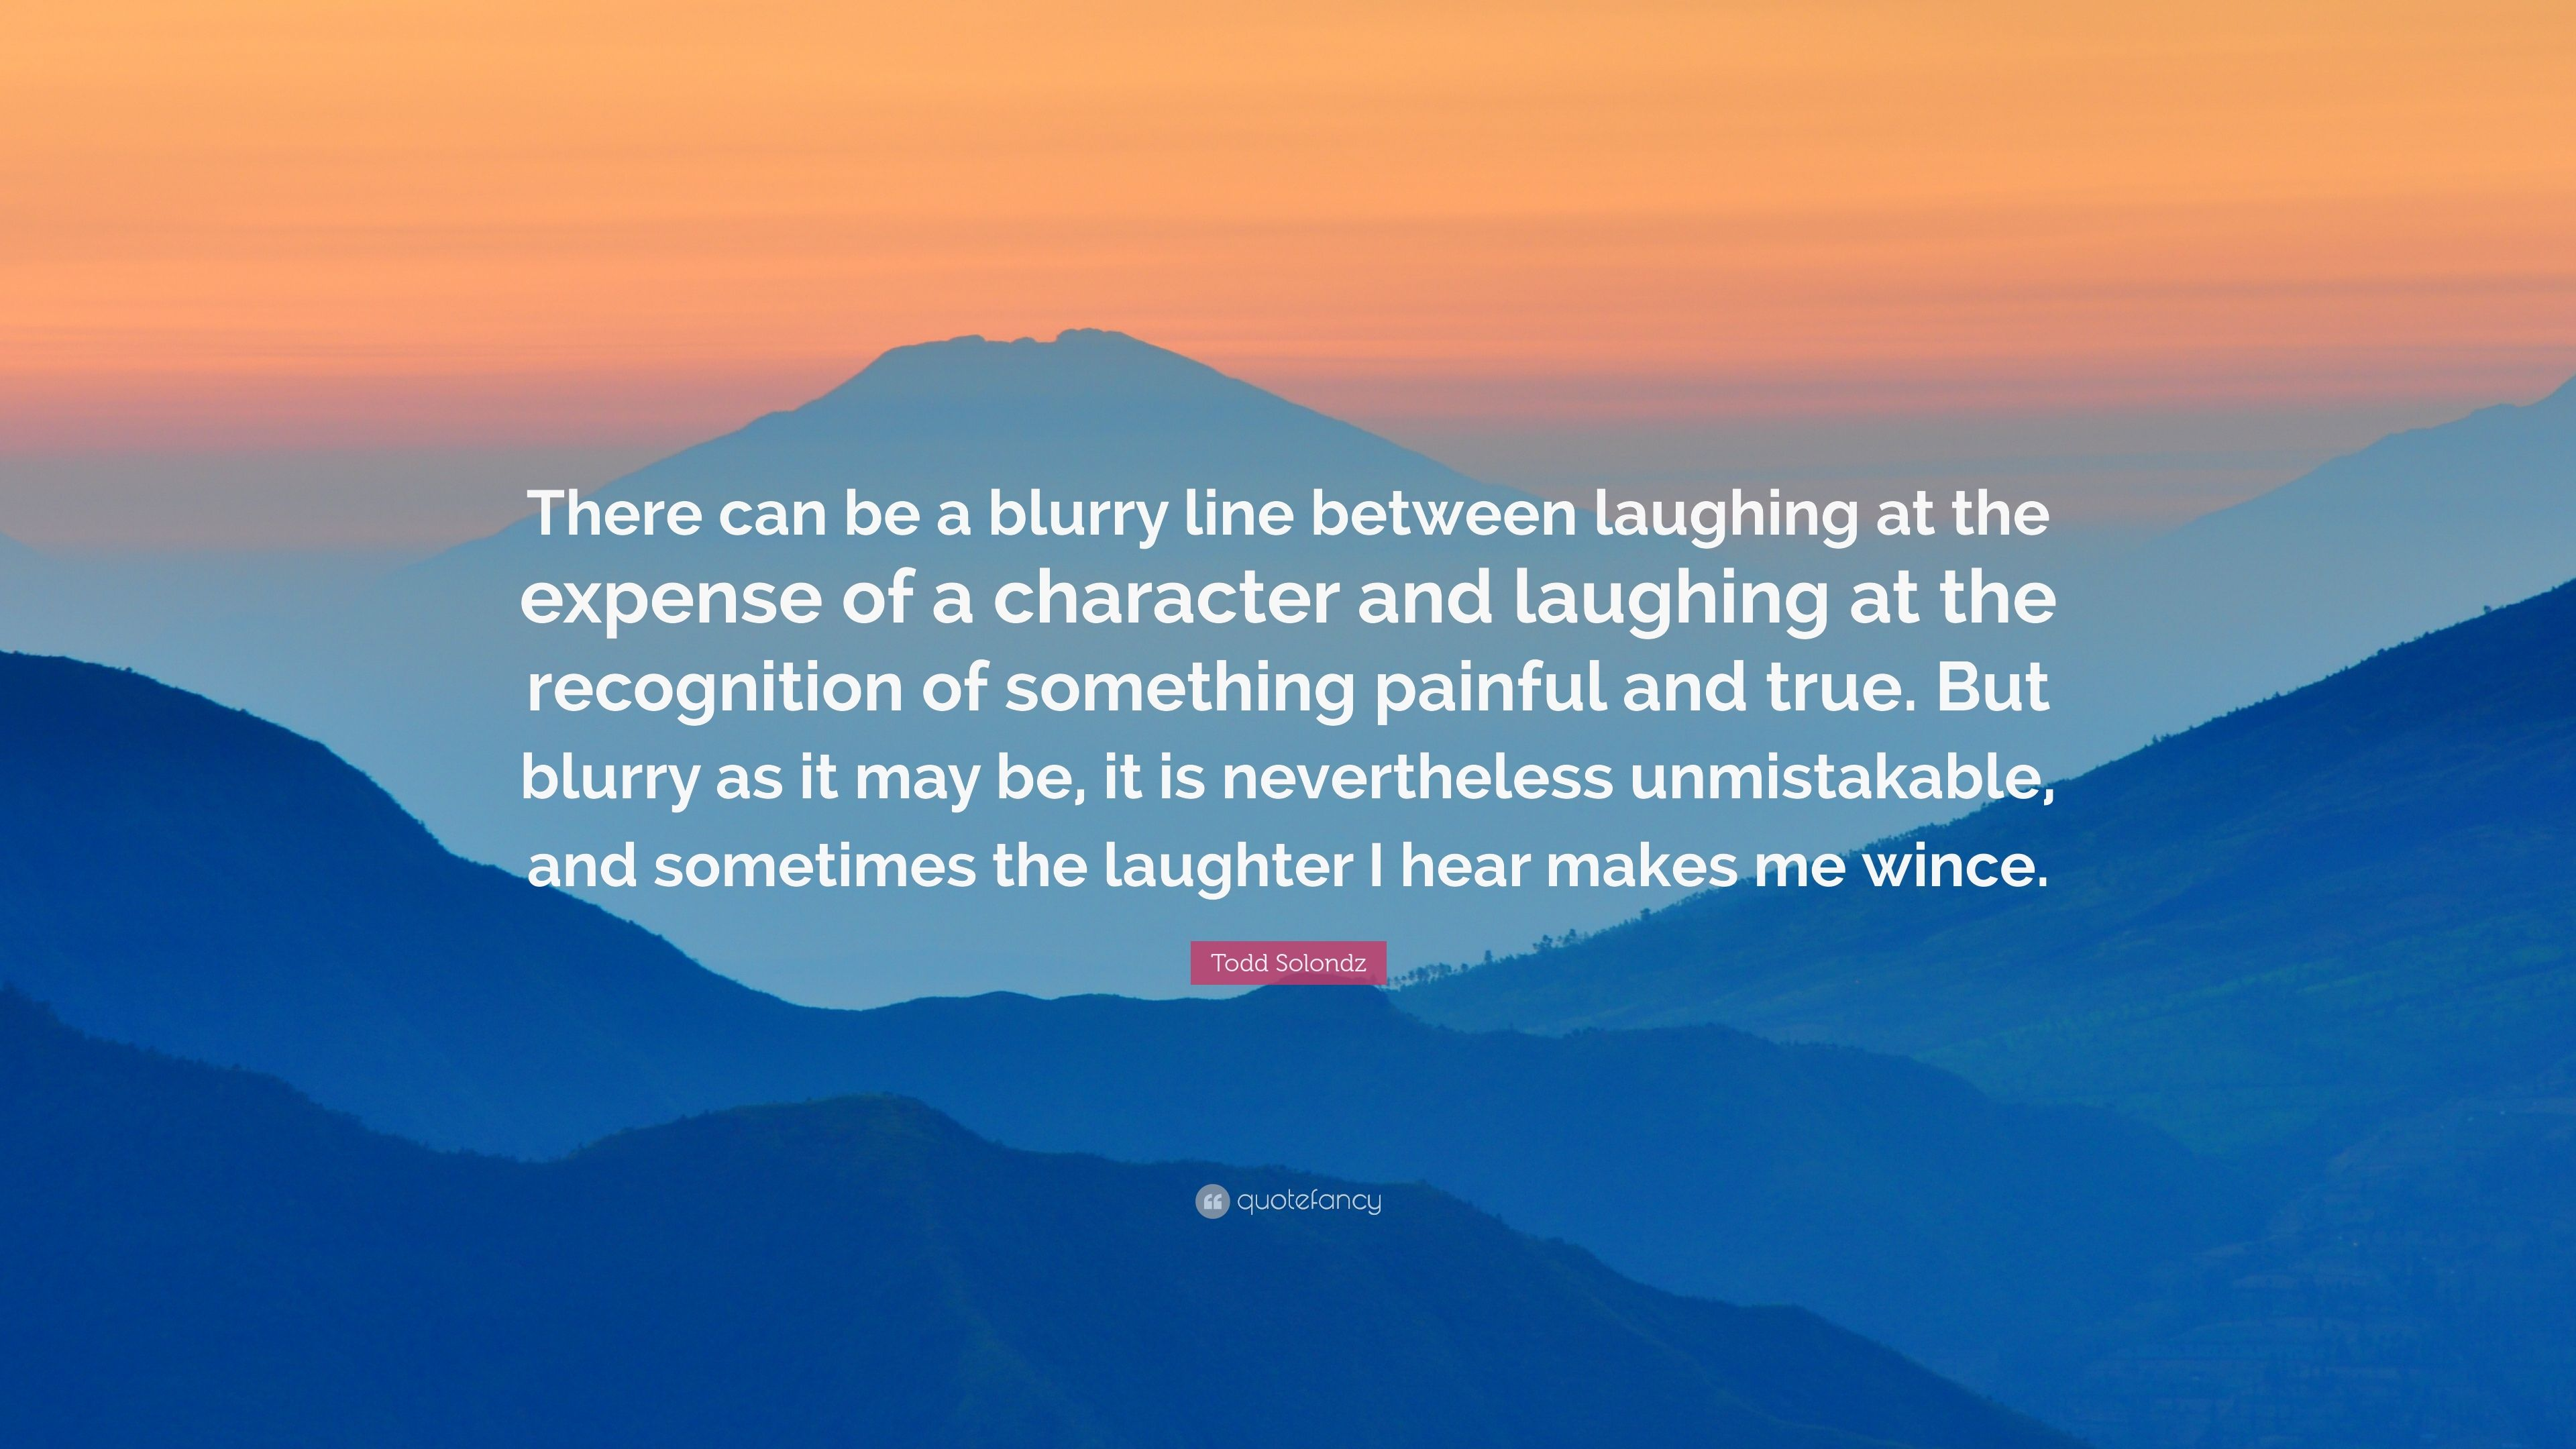 Best Wallpaper Mountain Blurry - 3353587-Todd-Solondz-Quote-There-can-be-a-blurry-line-between-laughing-at  Image_906410.jpg